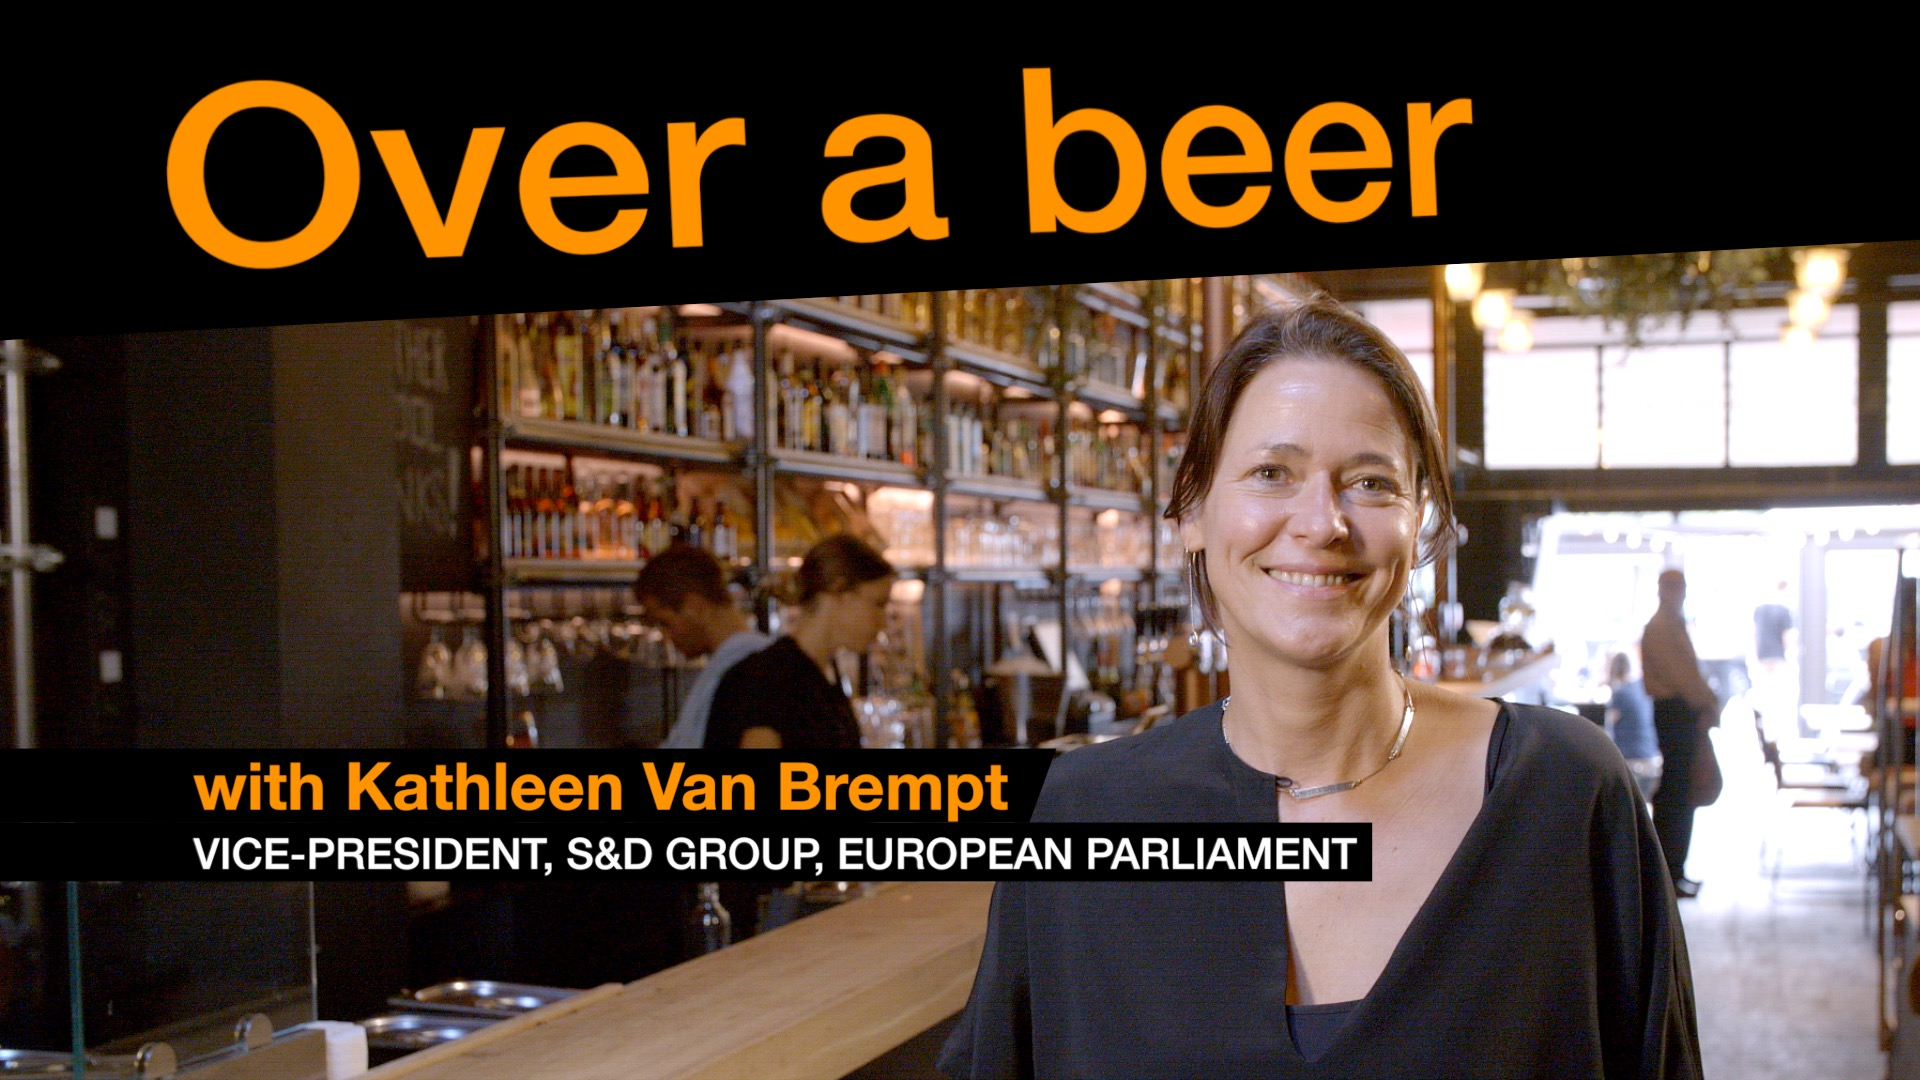 Over a beer with Kathleen Van Brempt